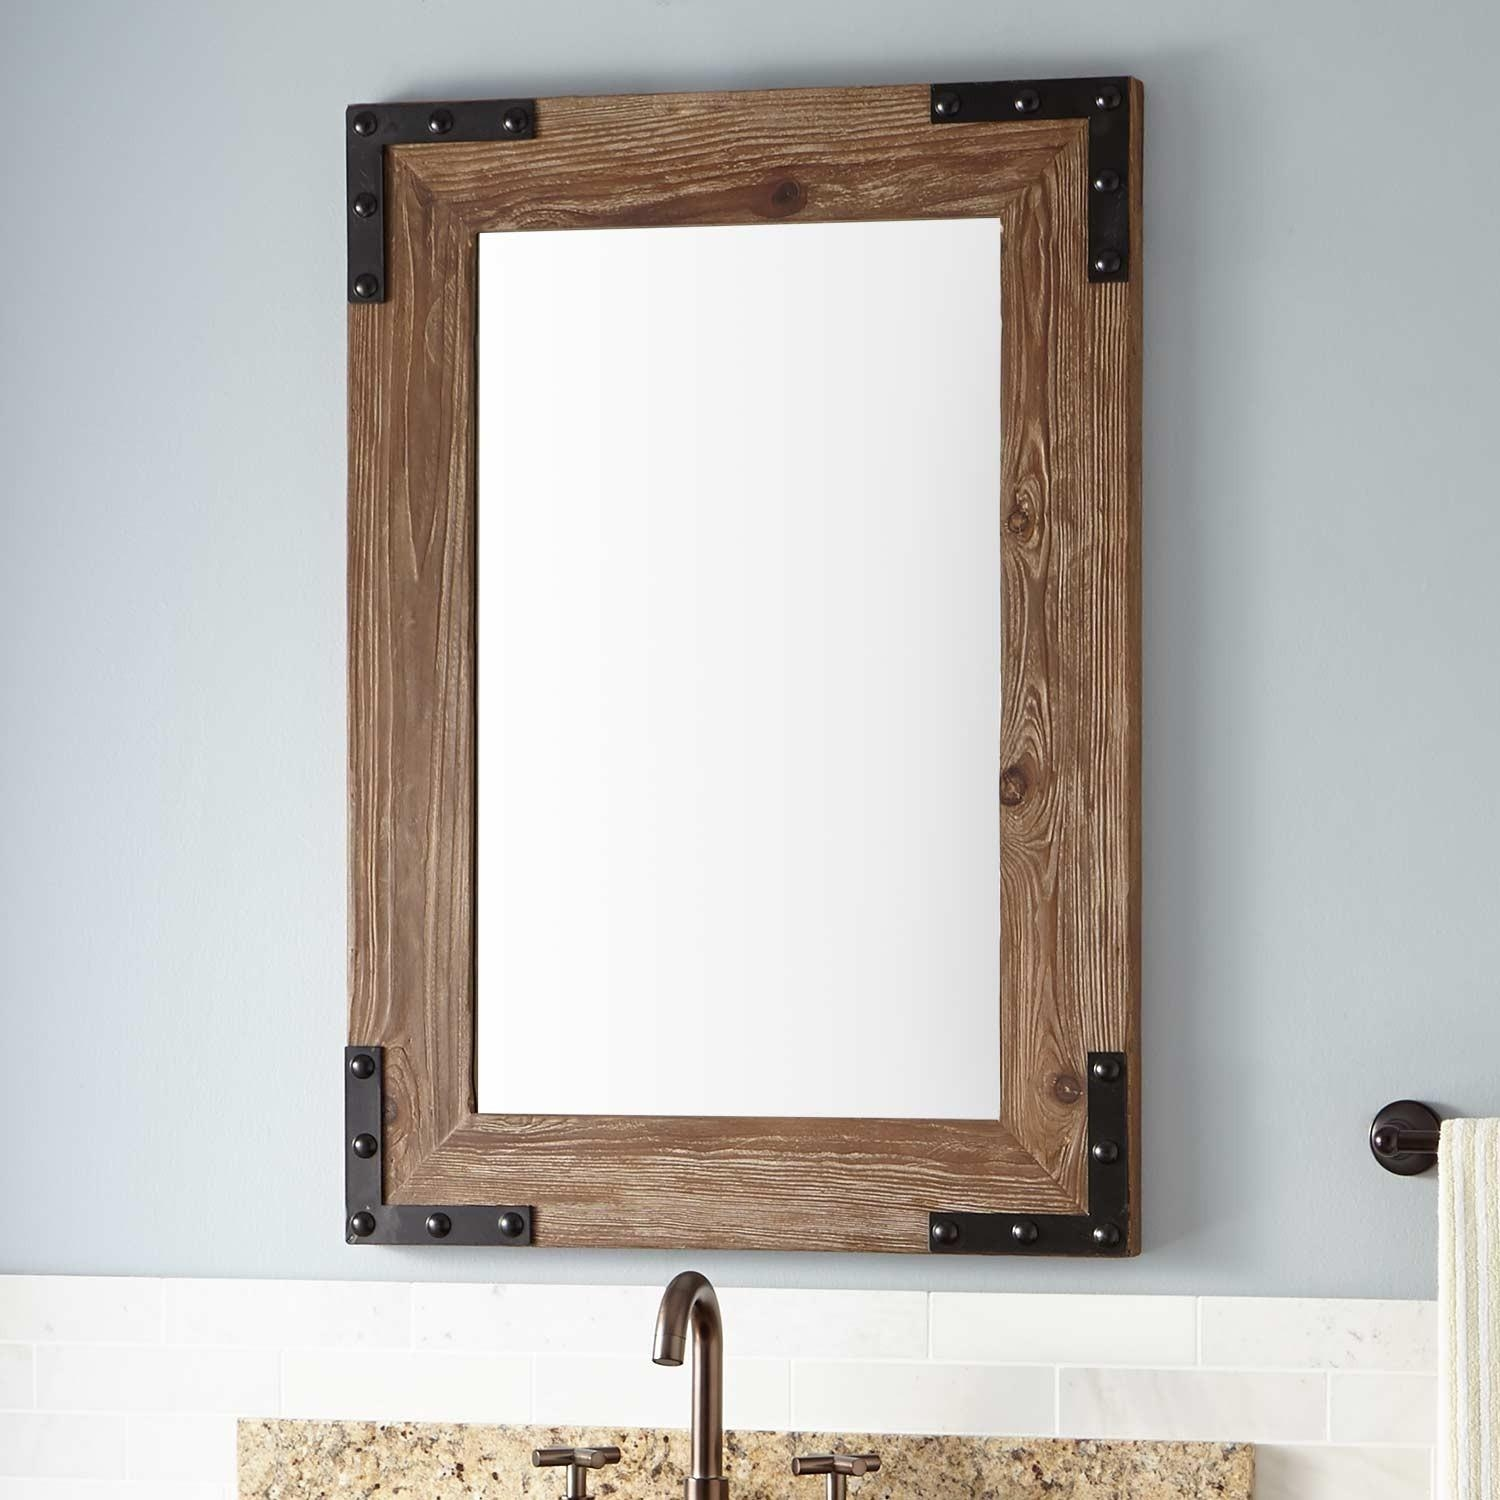 Framed Bathroom Mirrors | Signature Hardware Intended For Natural Wood Framed Mirrors (Image 7 of 20)